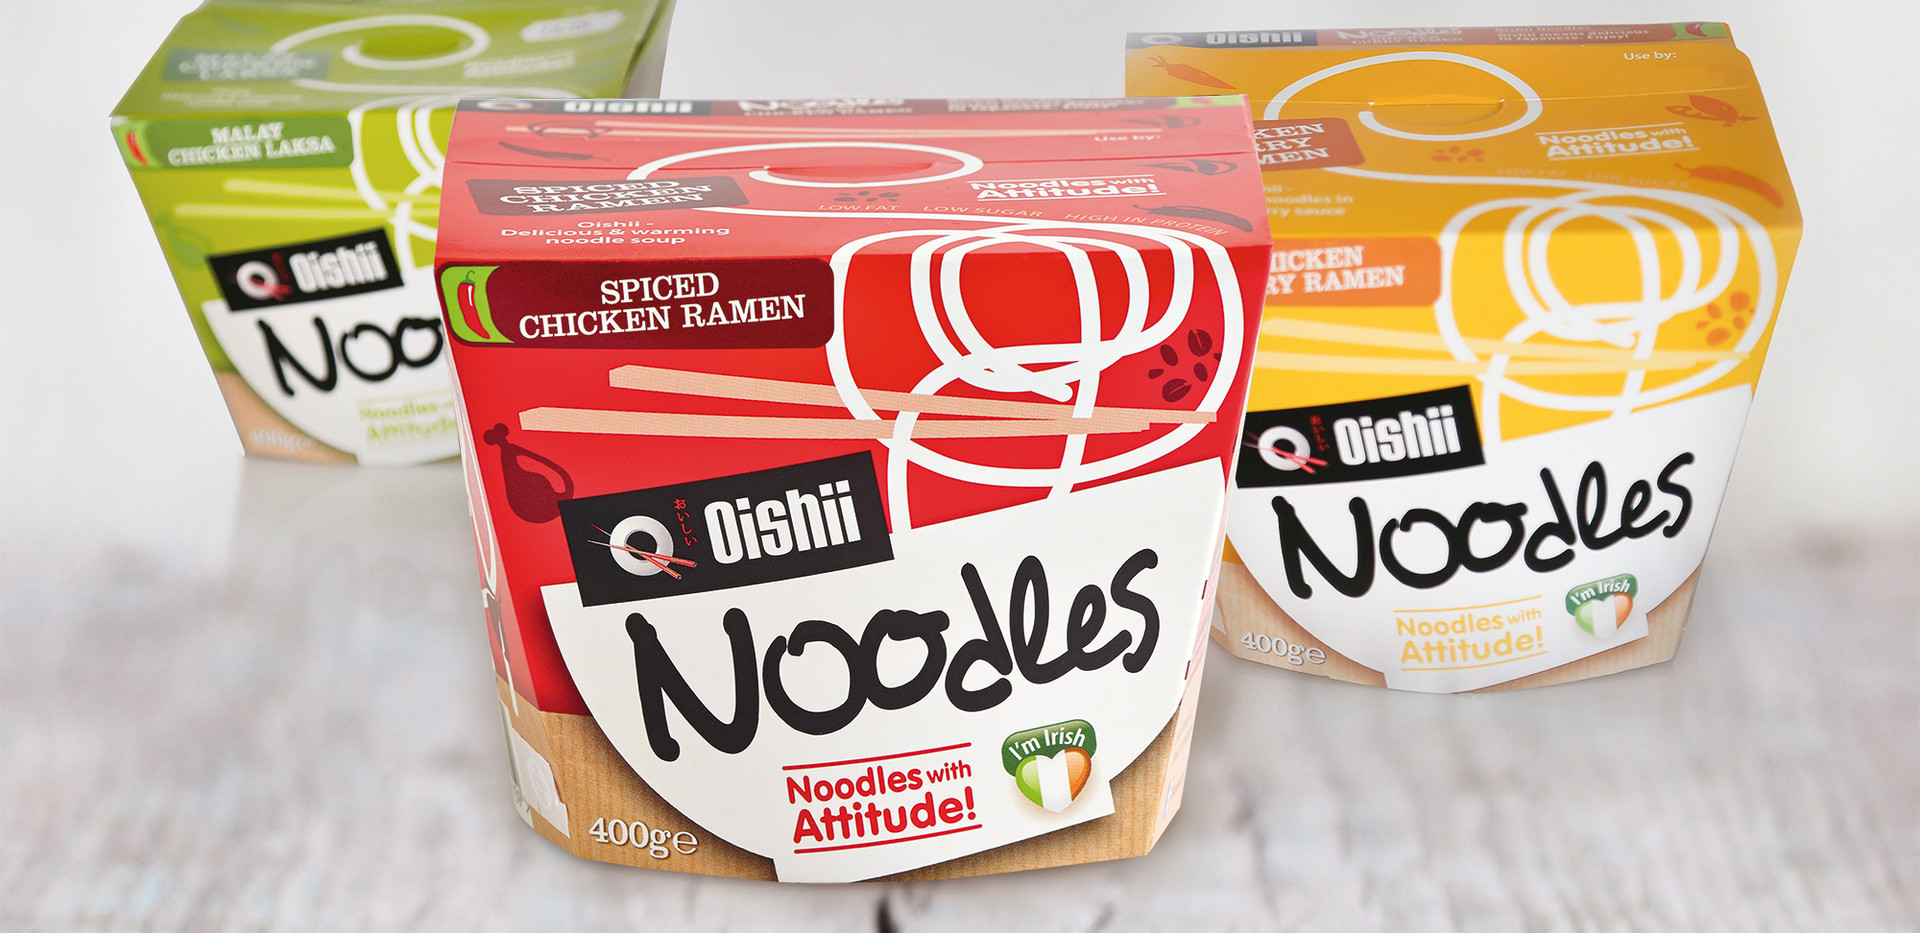 Oishii Noodles lighter background.jpg